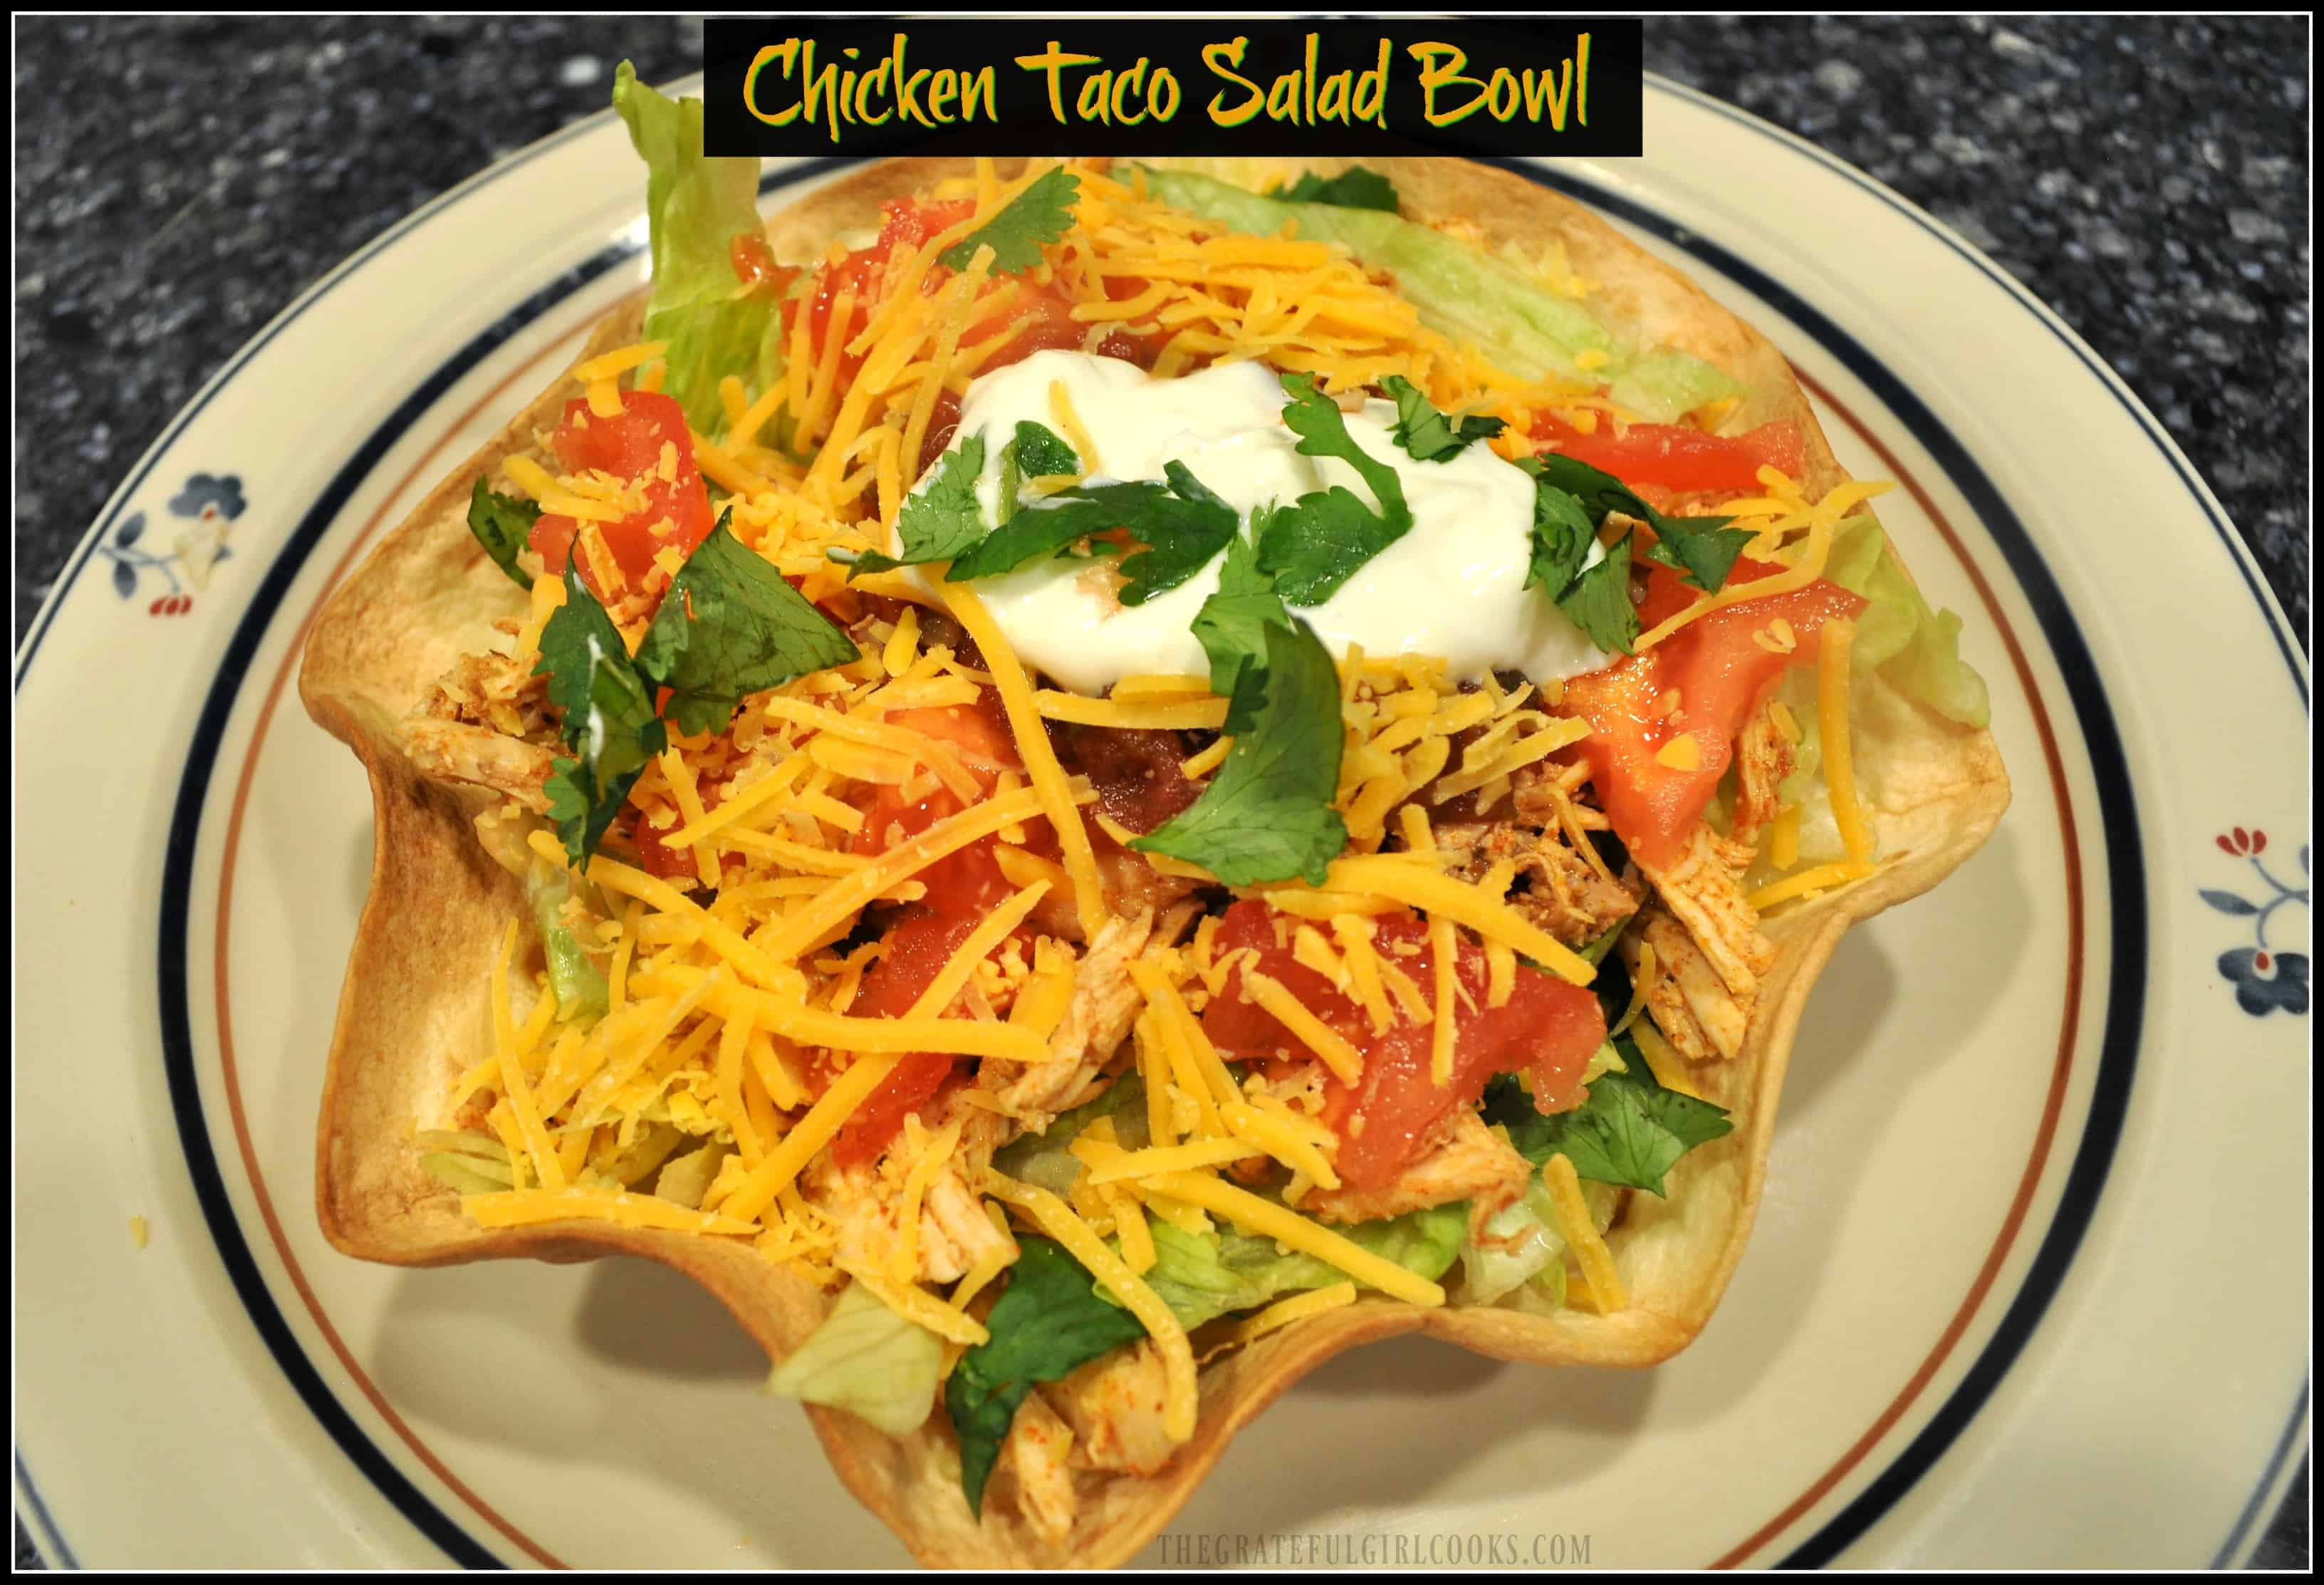 Chicken Taco Salad Bowl The Grateful Girl Cooks